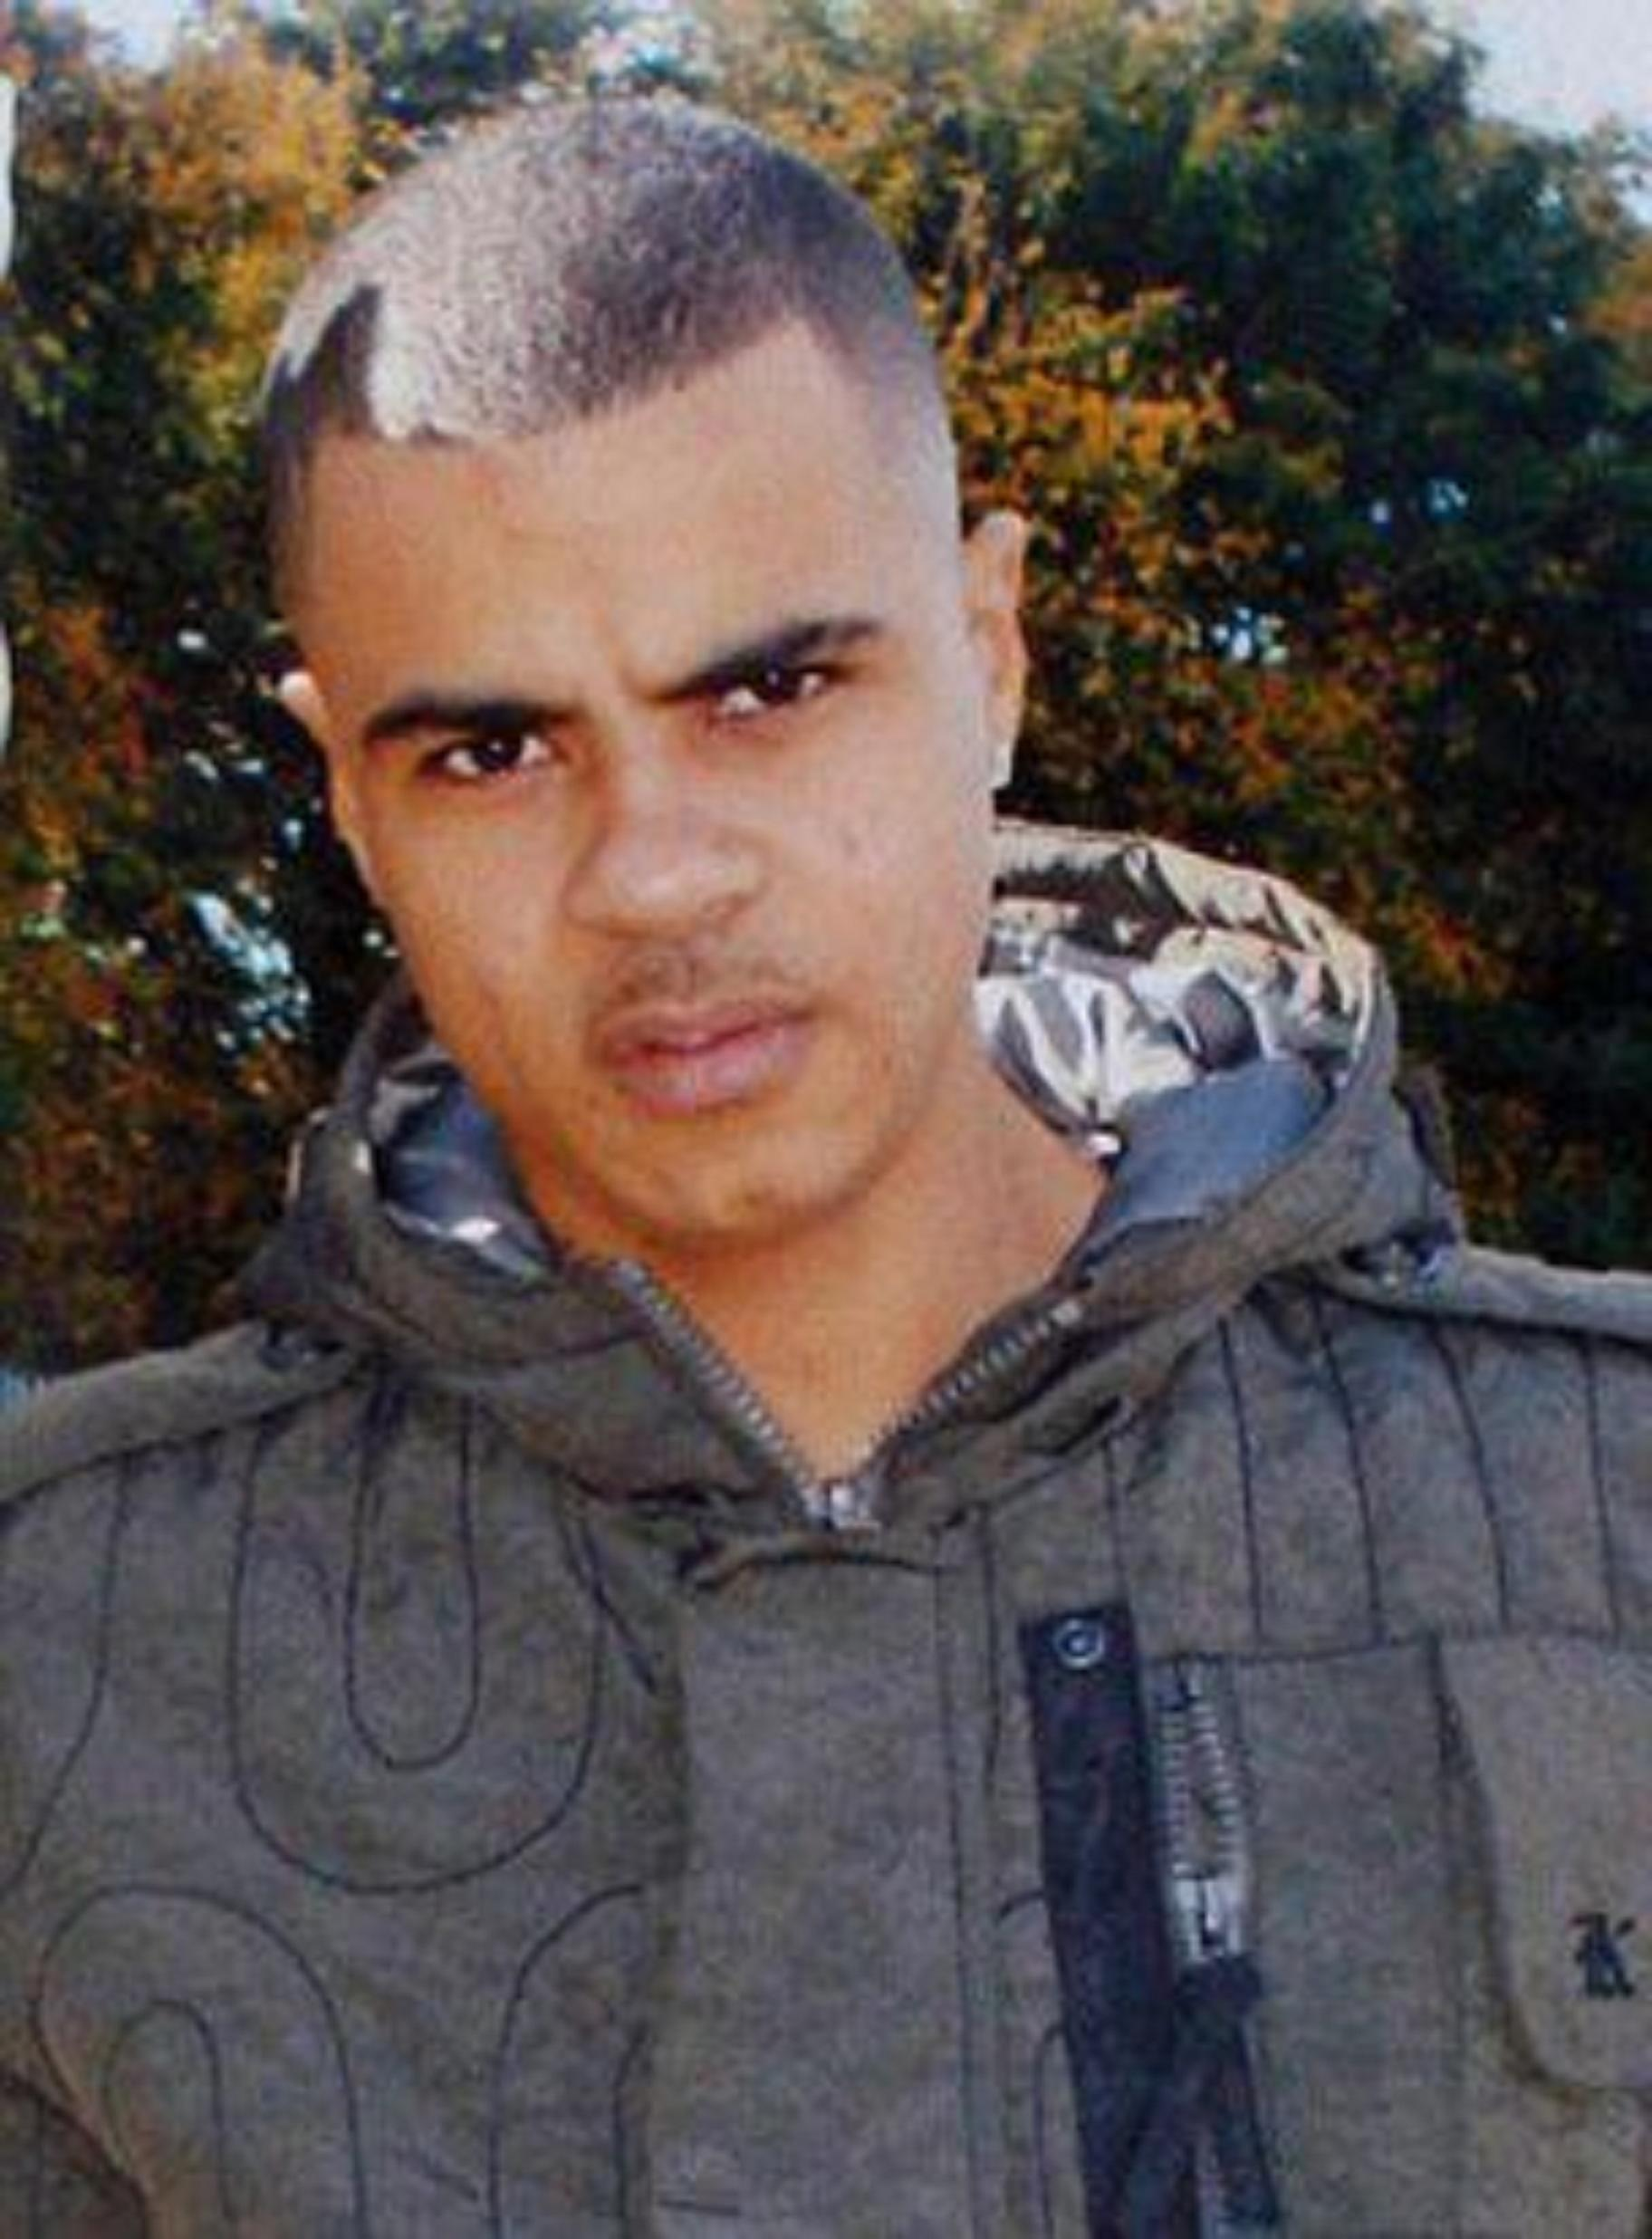 Mark Duggan was shot by police in August 2011